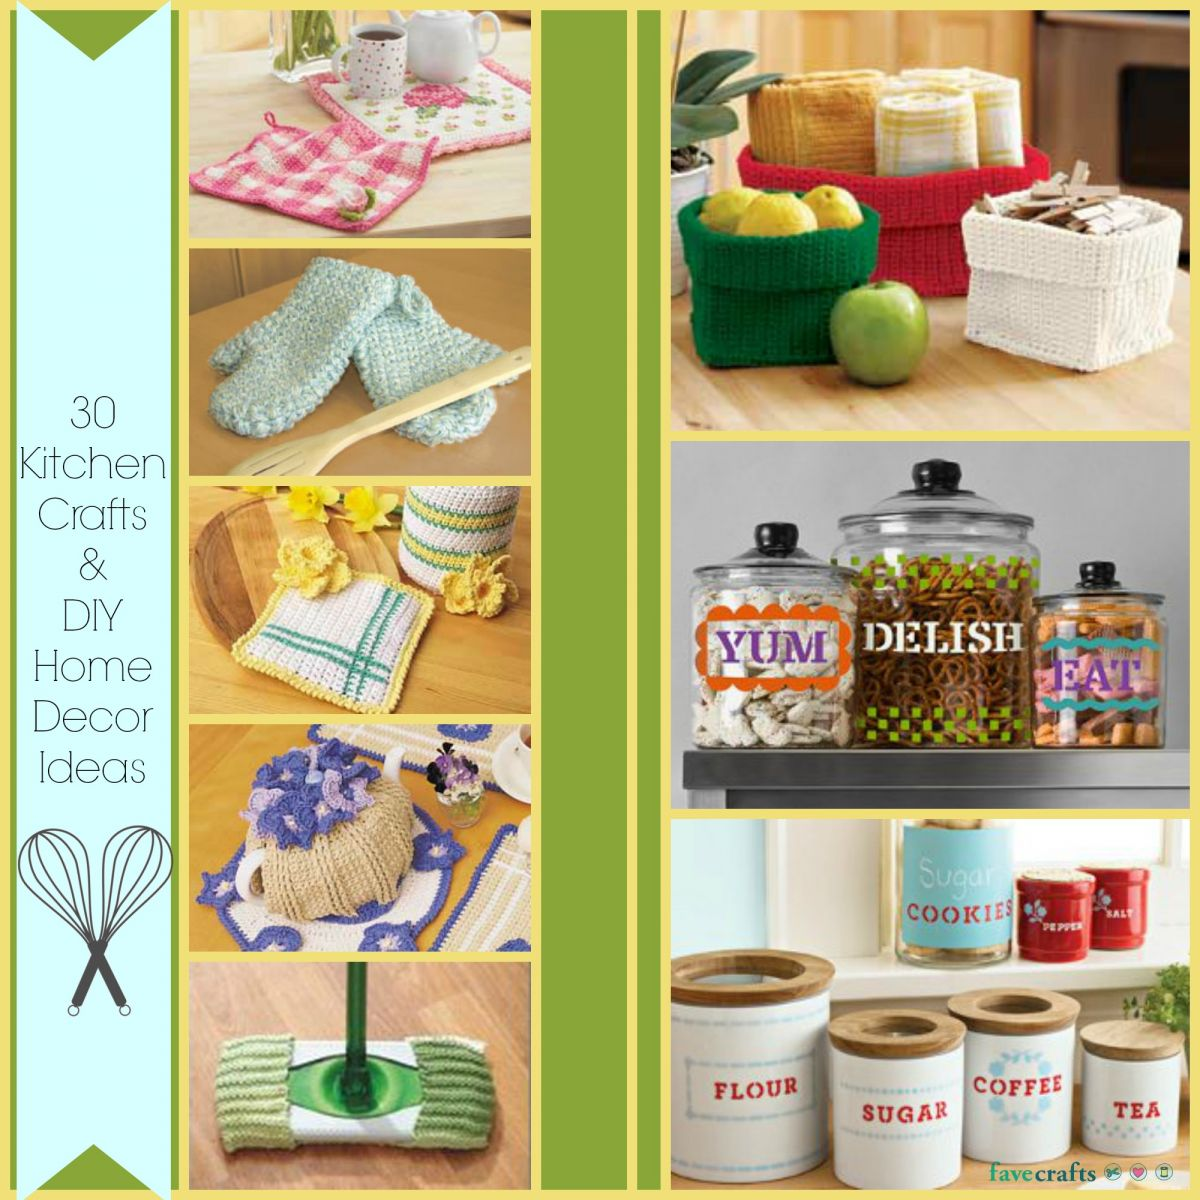 30 kitchen crafts and diy home decor ideas for Home design ideas handmade